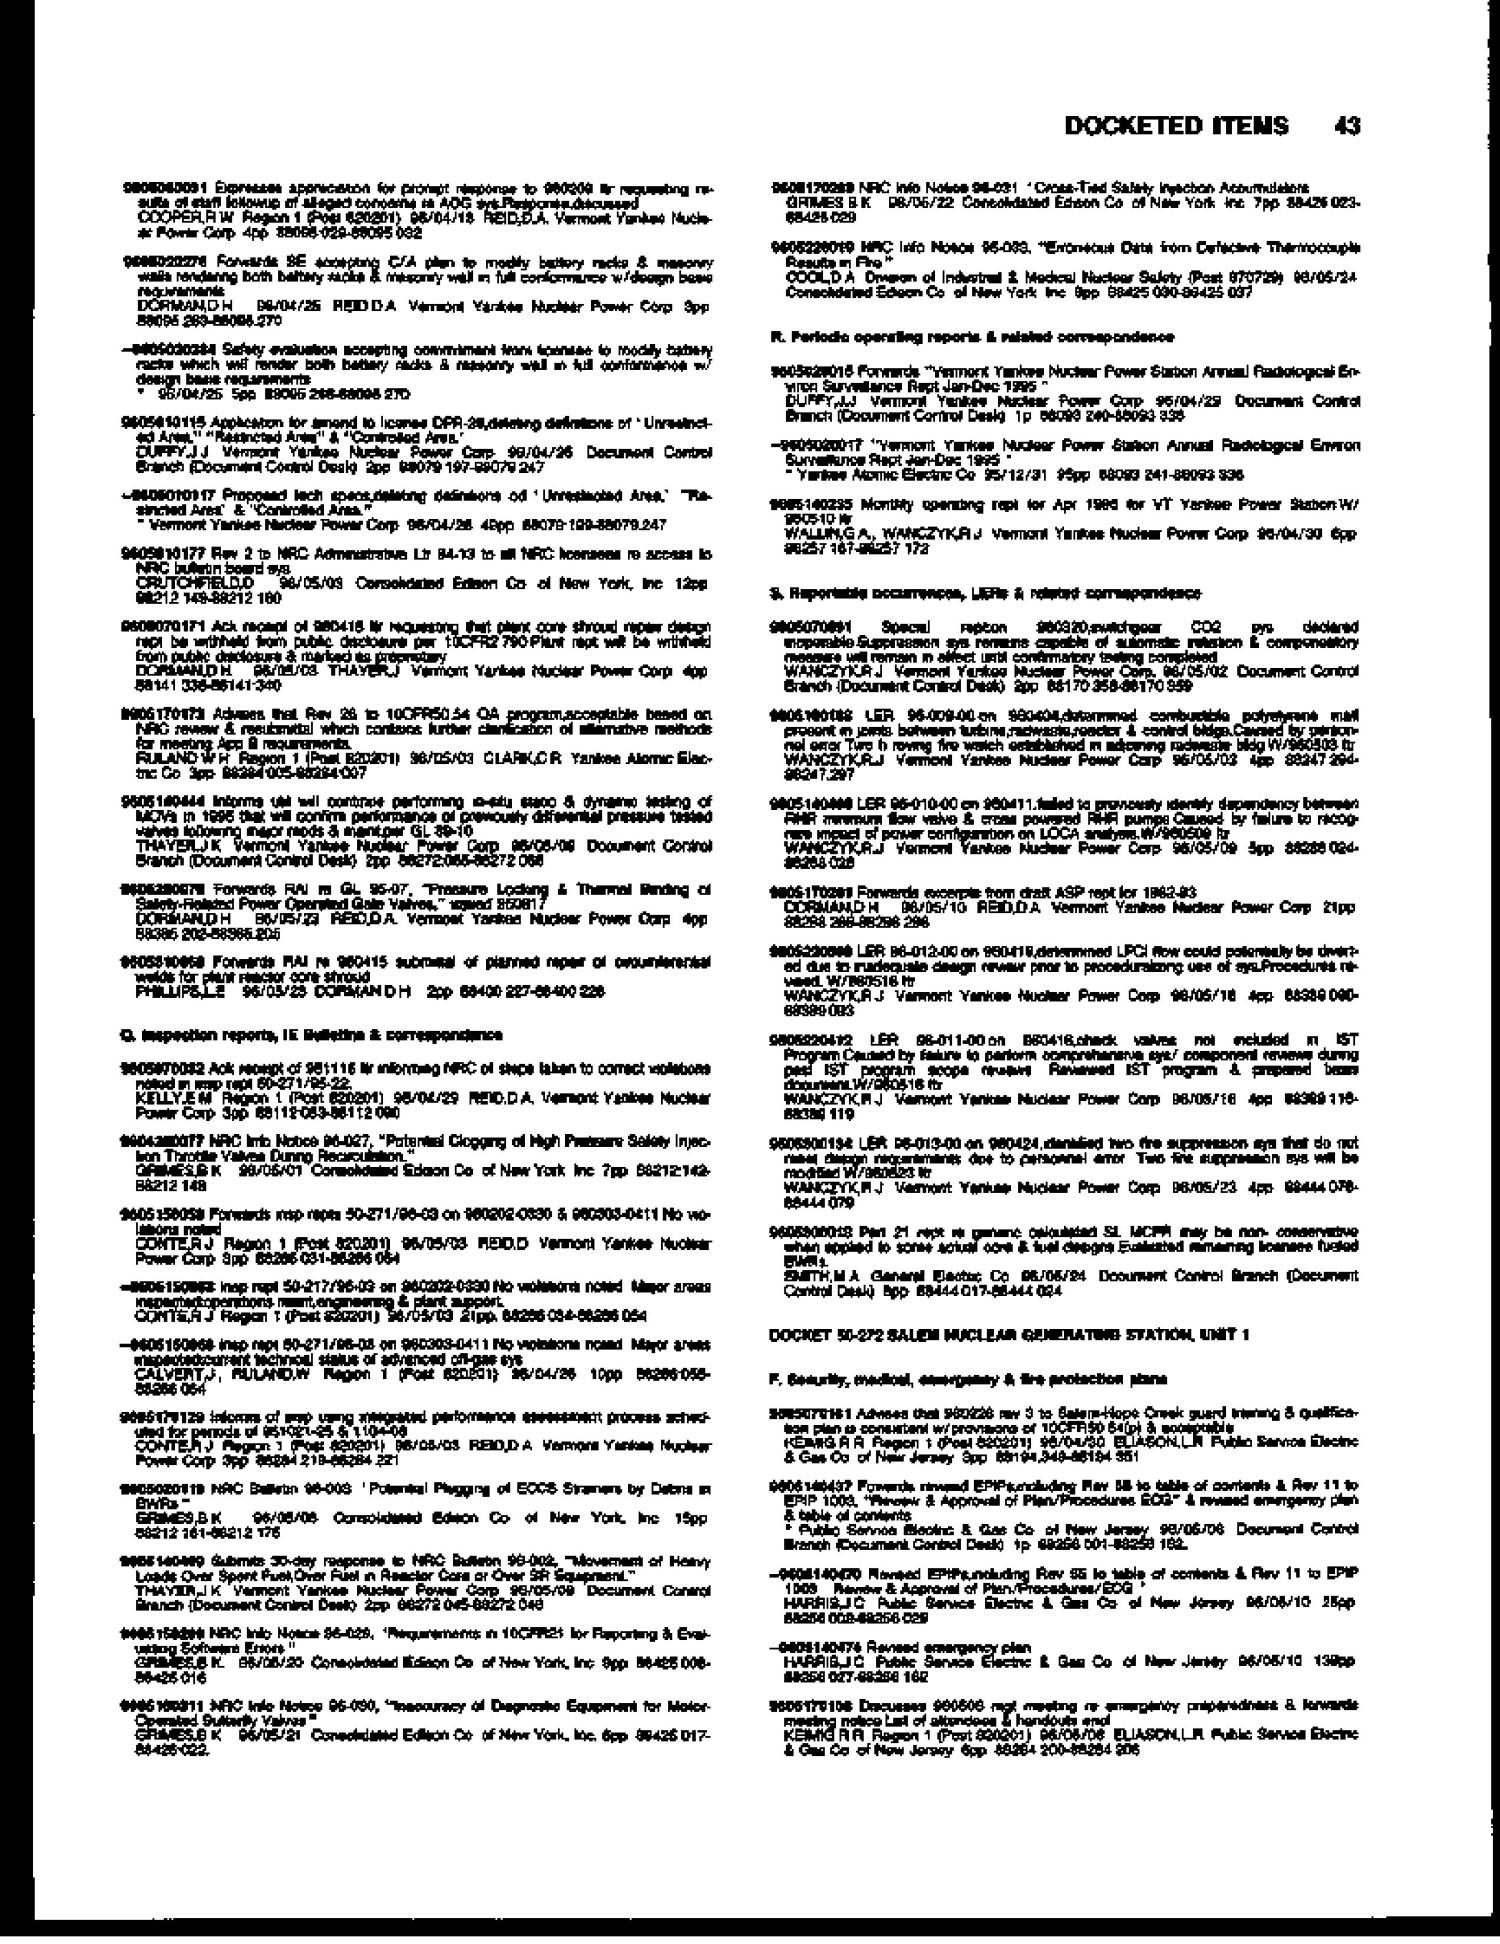 Title List Of Documents Made Publicly Available May 1 31 1996